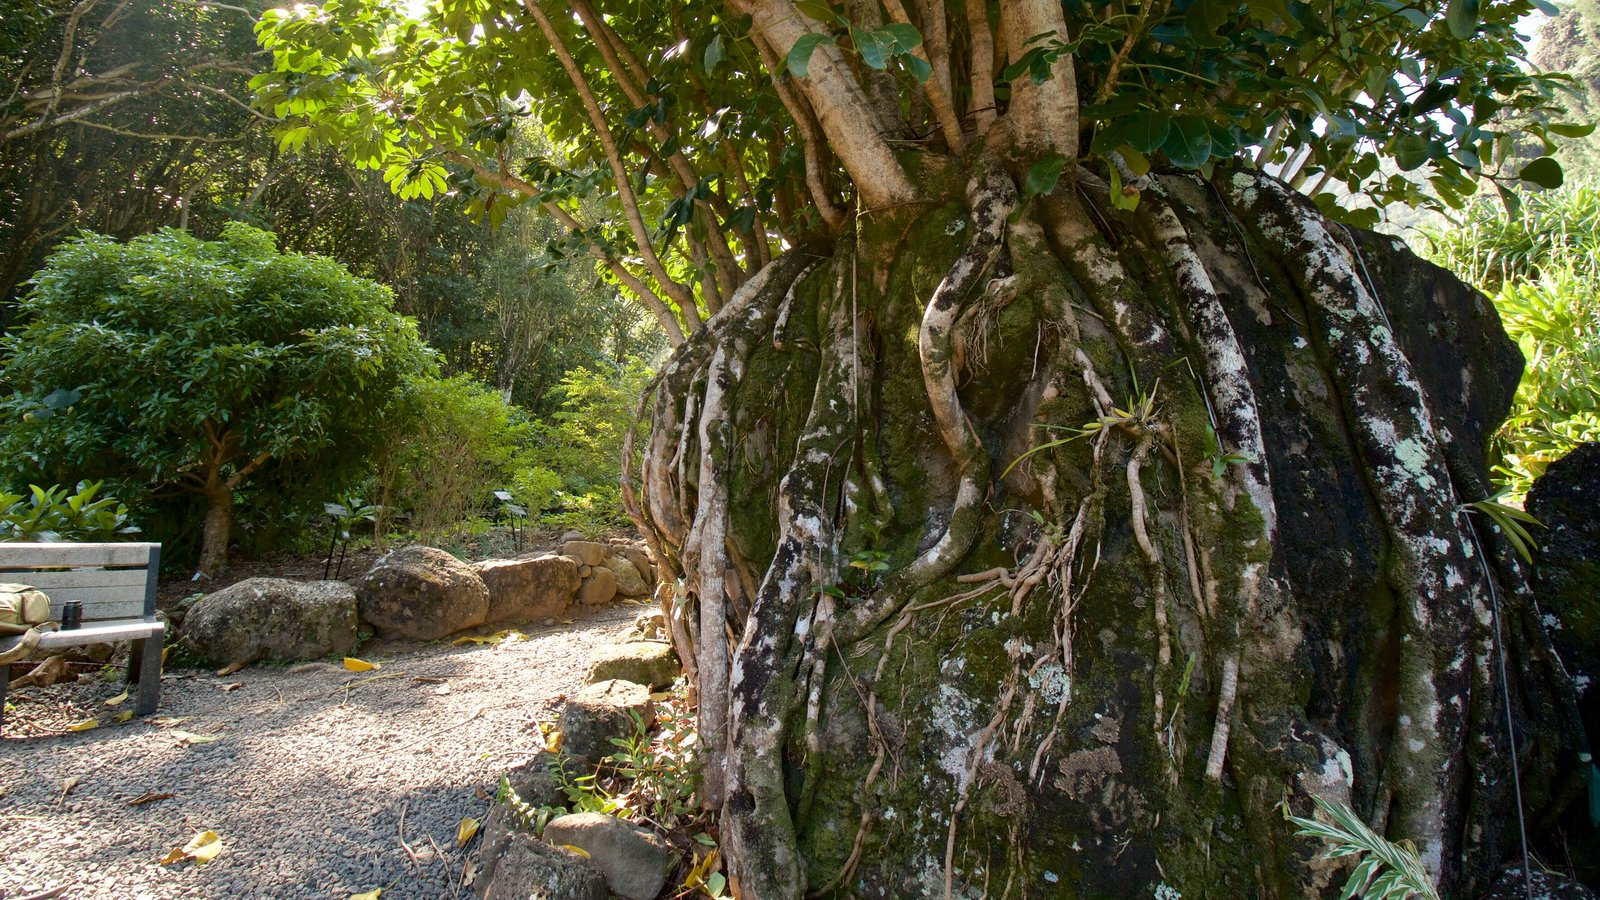 Limahuli Gardens and Preserve Pictures: View Photos & Images of ...